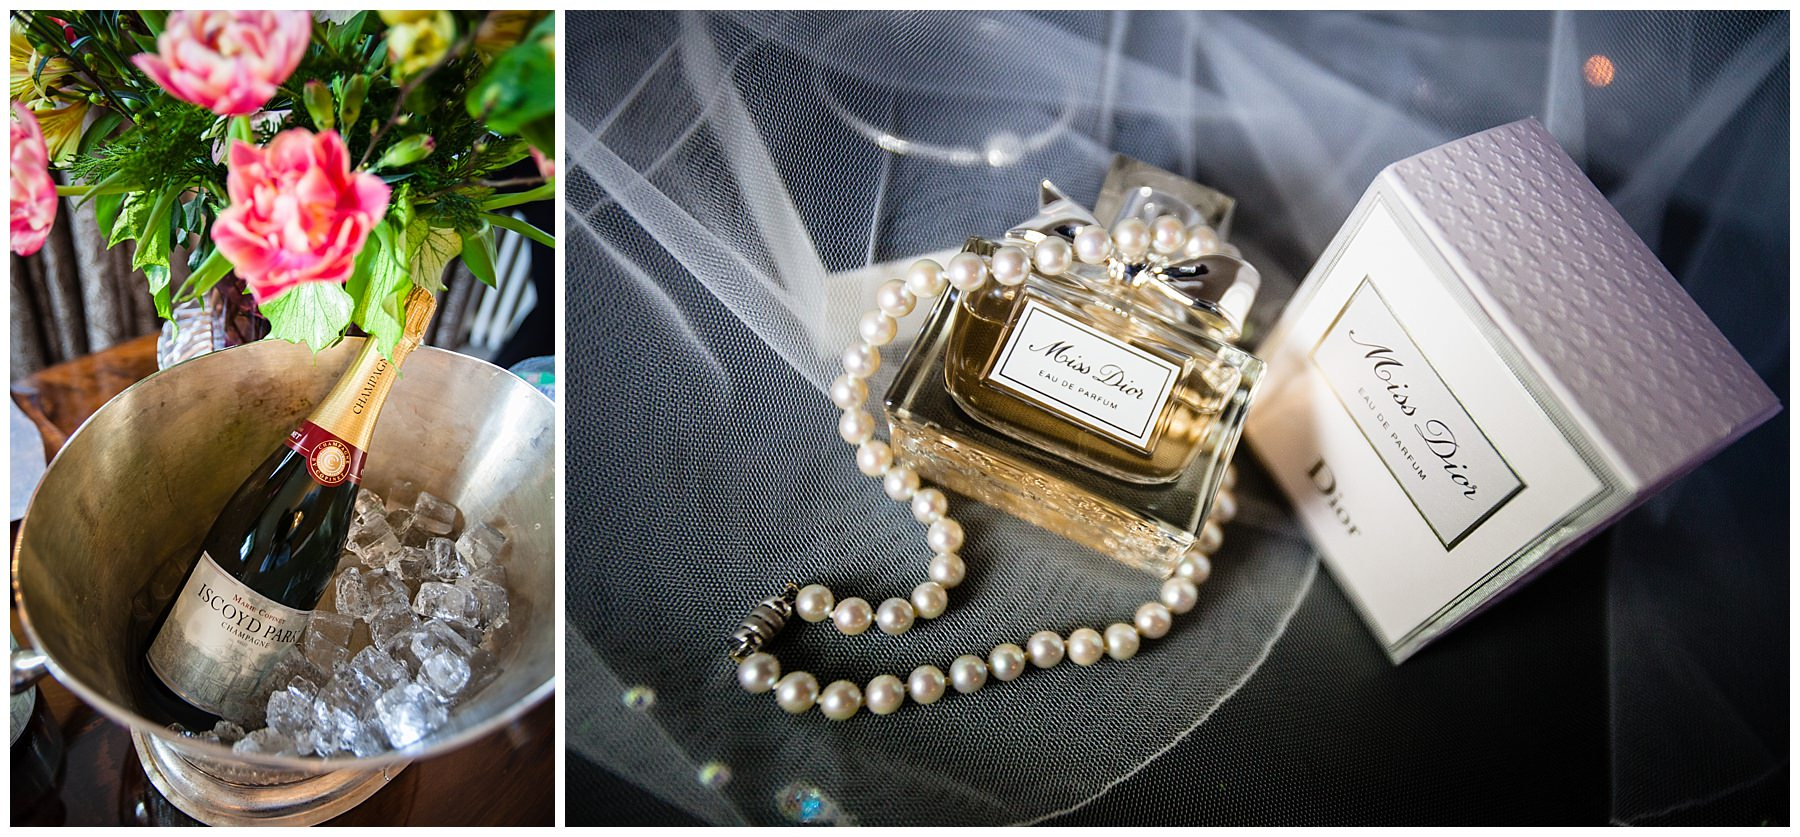 Iscoyd Park's own champagne in ice bucket and brides necklace, veil and dior perfume